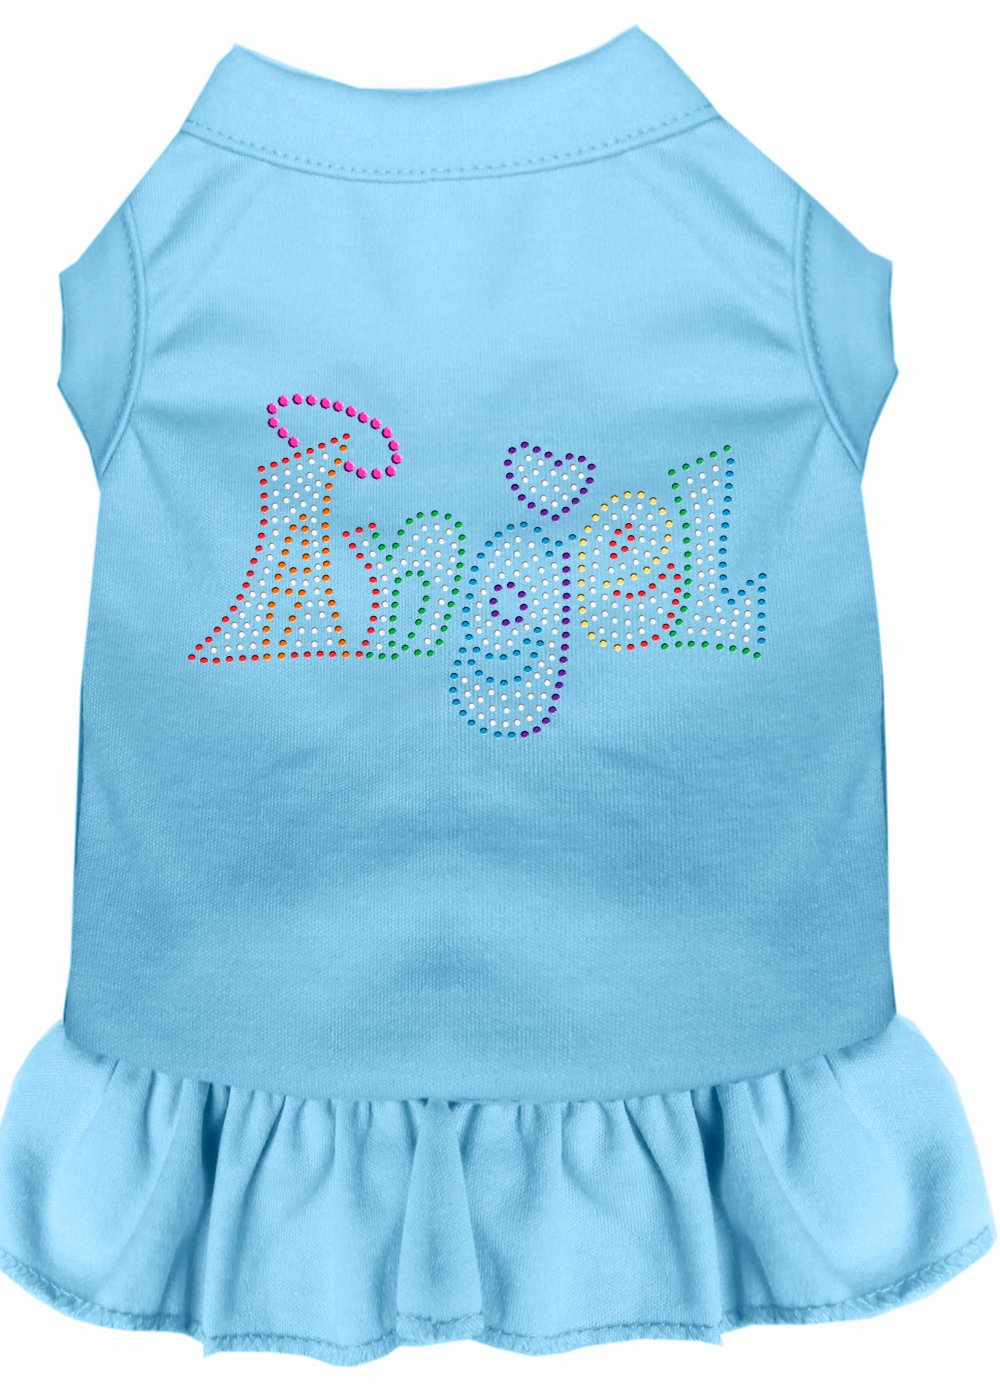 Mirage Pet Products 57-63 XSBBL bluee Technicolor Angel Rhinestone Pet Dress Baby, X-Small